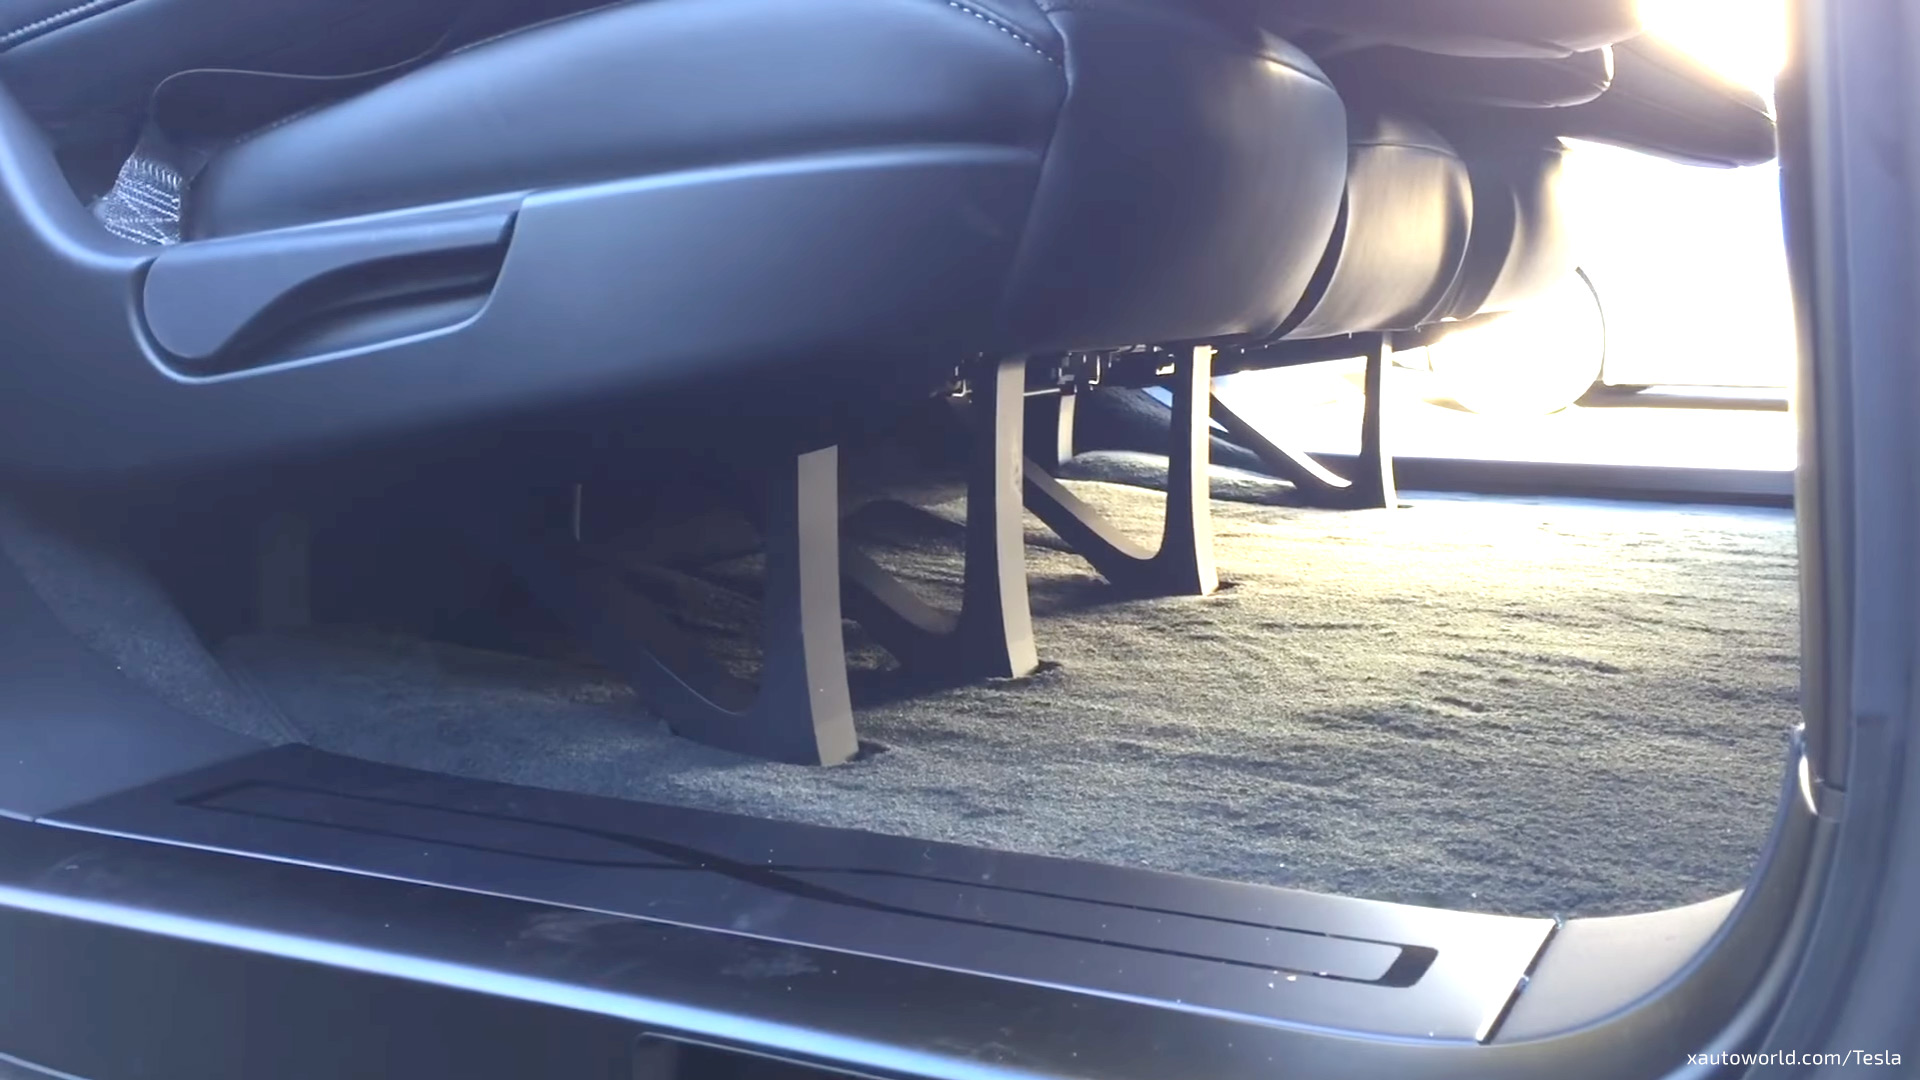 Model X 5 Seat Configuration Cargo Space With Folding